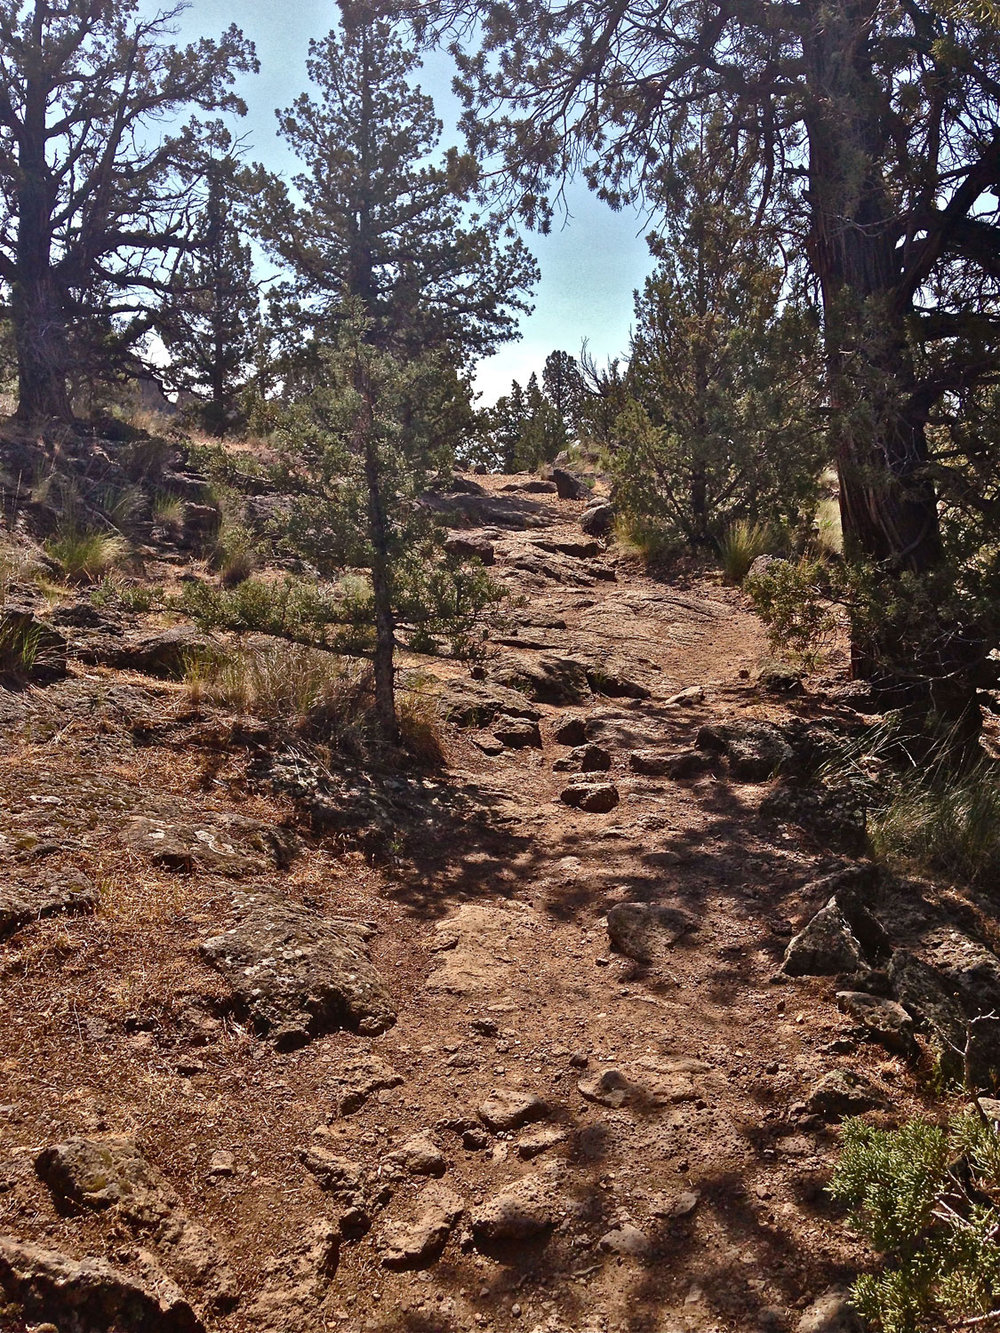 Rocky section of steep uphill of standard route up out of the canyon on Homestead Trail at Smith Rock State Park.